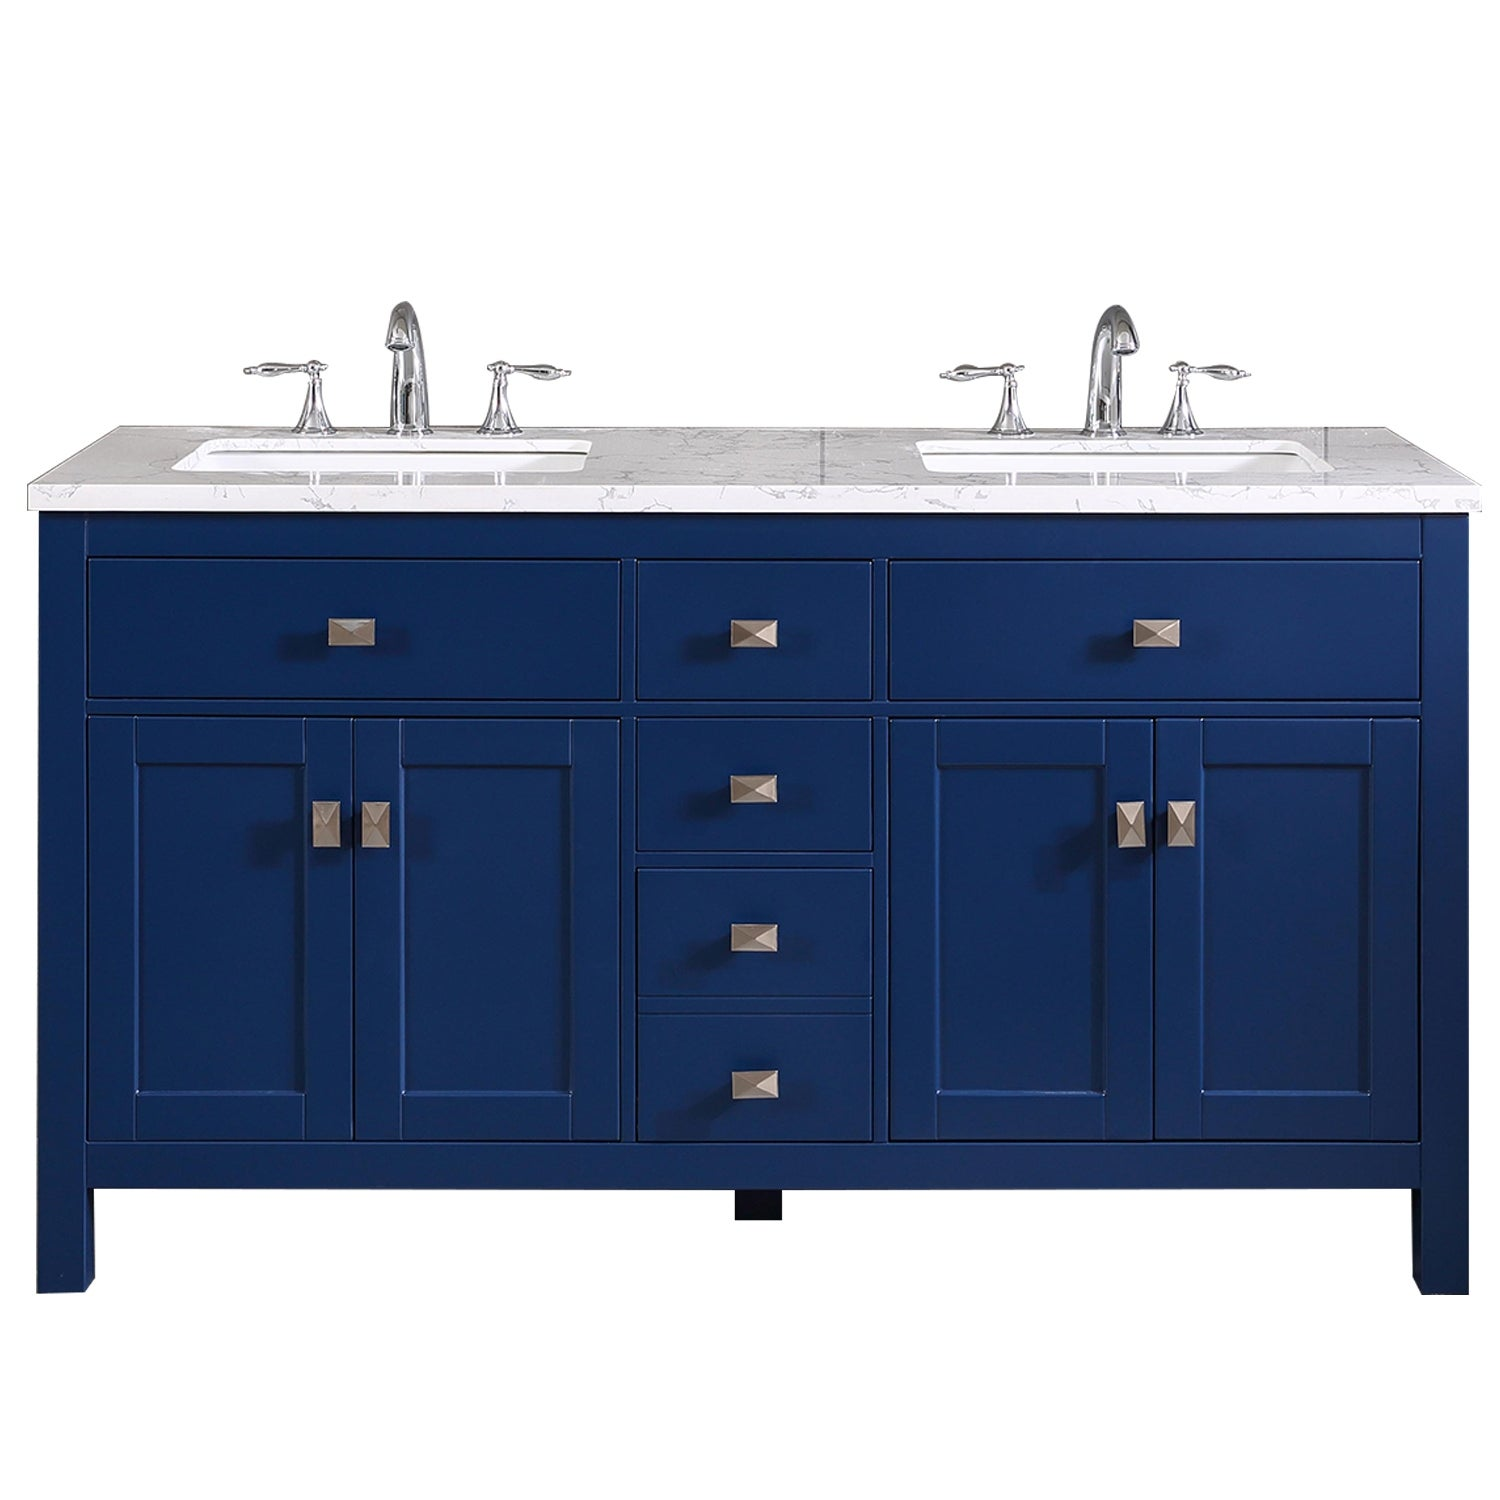 Totti Memphis 60 Blue Transitional Double Sink Bathroom Vanity W White Carrara Style Man Made Stone Top Overstock 32352432